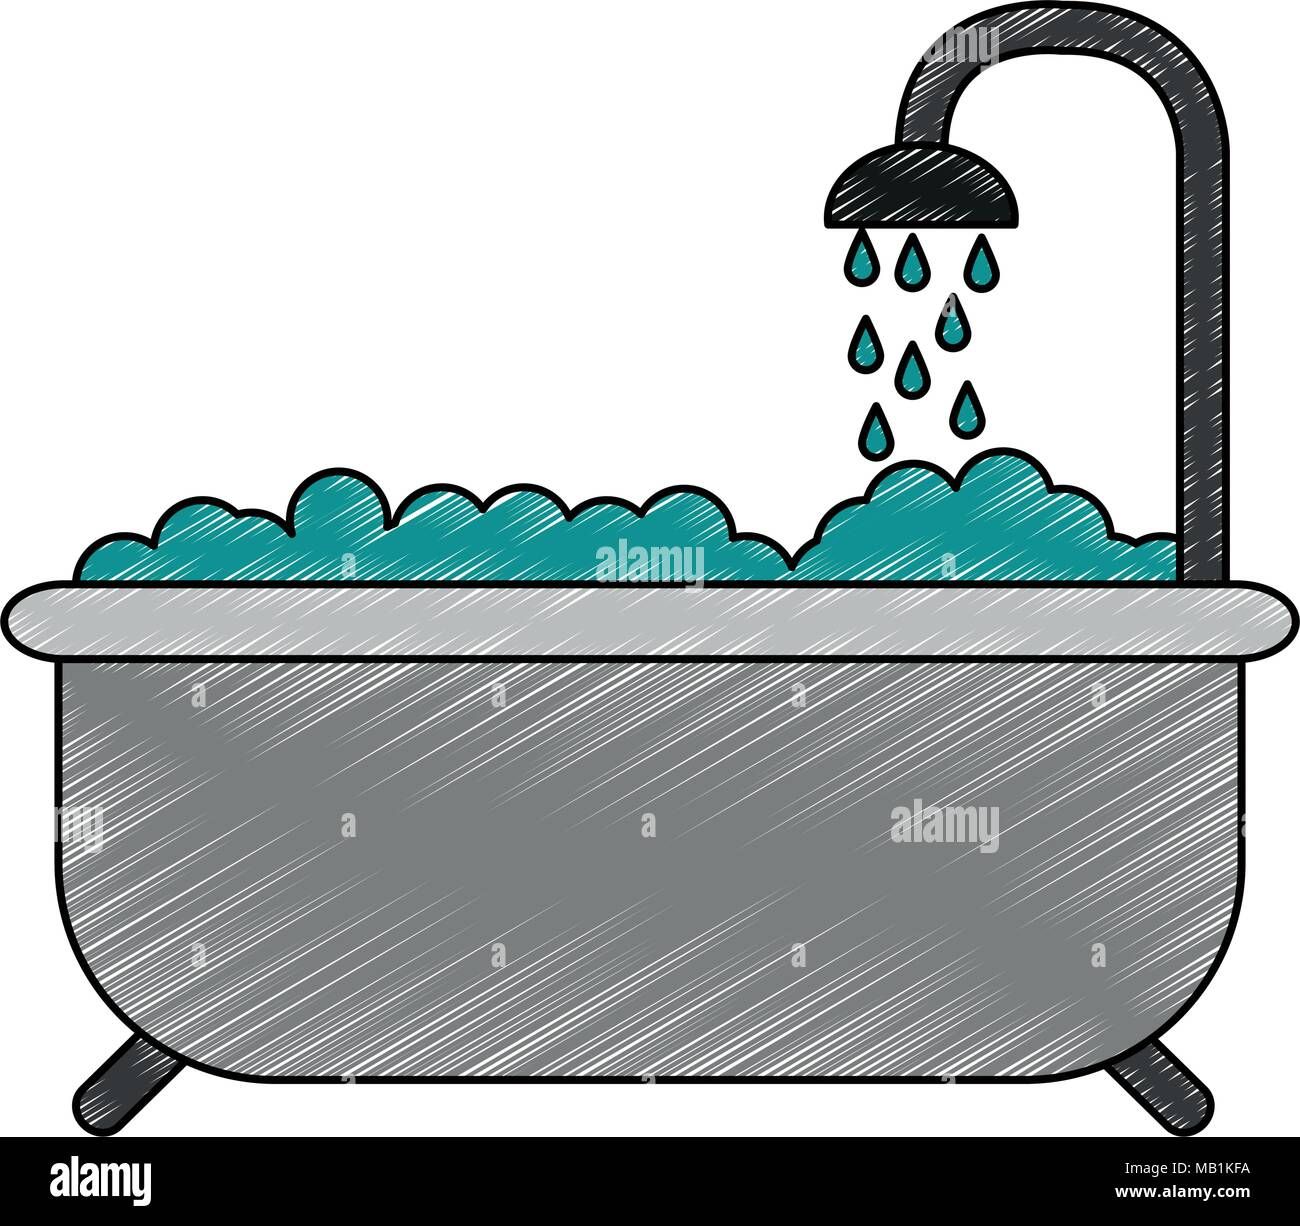 Tub with shower isolated scribble - Stock Image